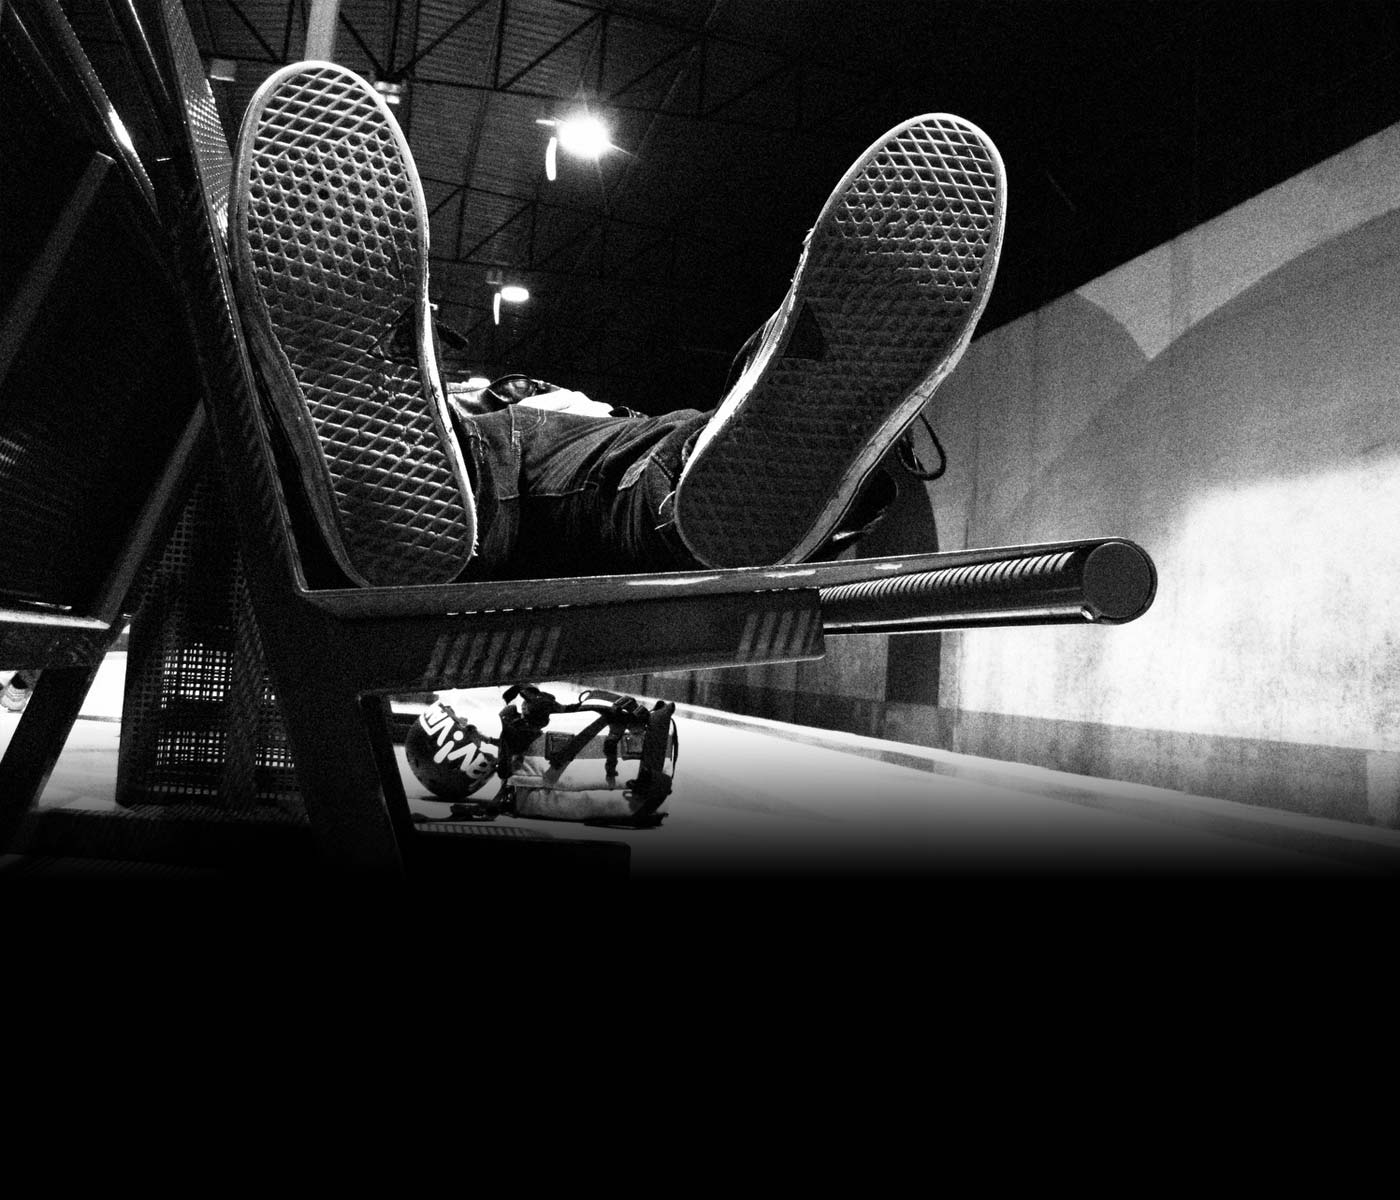 vans skateboard wallpaper 3d - photo #17